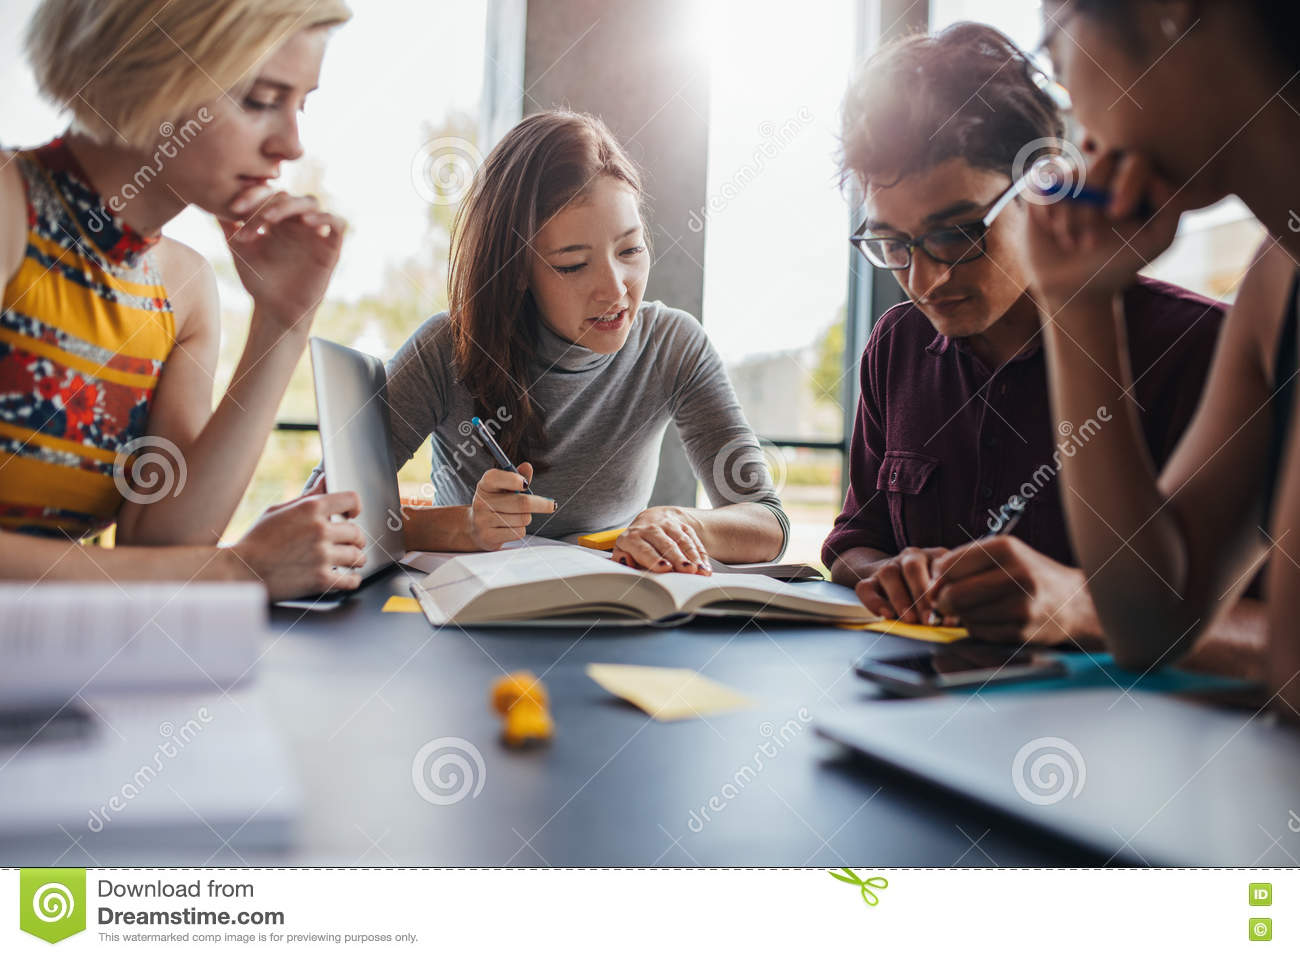 Group of students doing school assignment